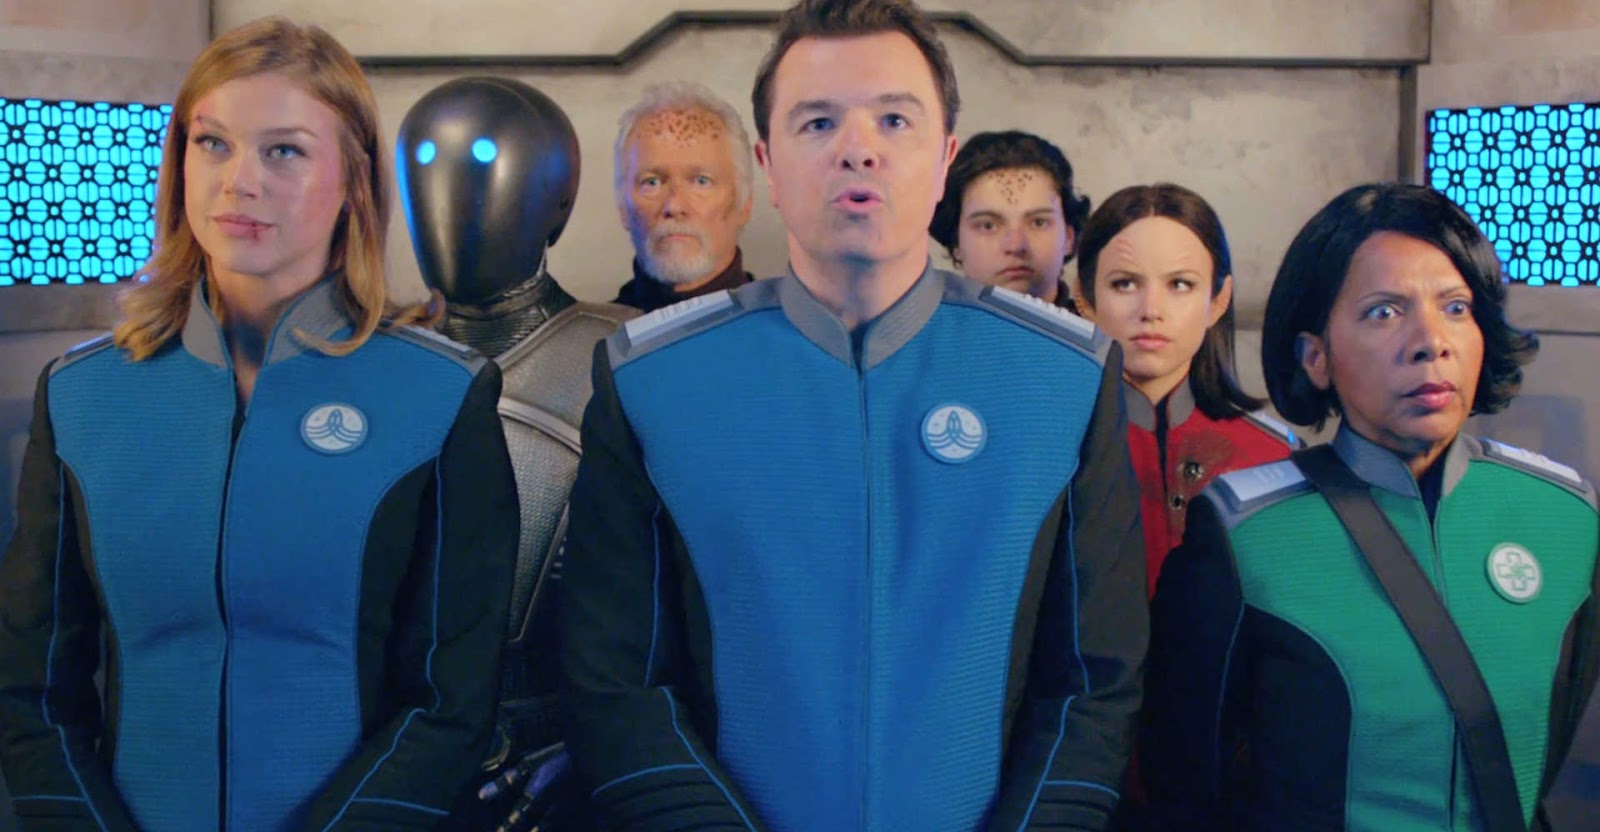 Infinite Earths The Gags Continue In New Trailer For The